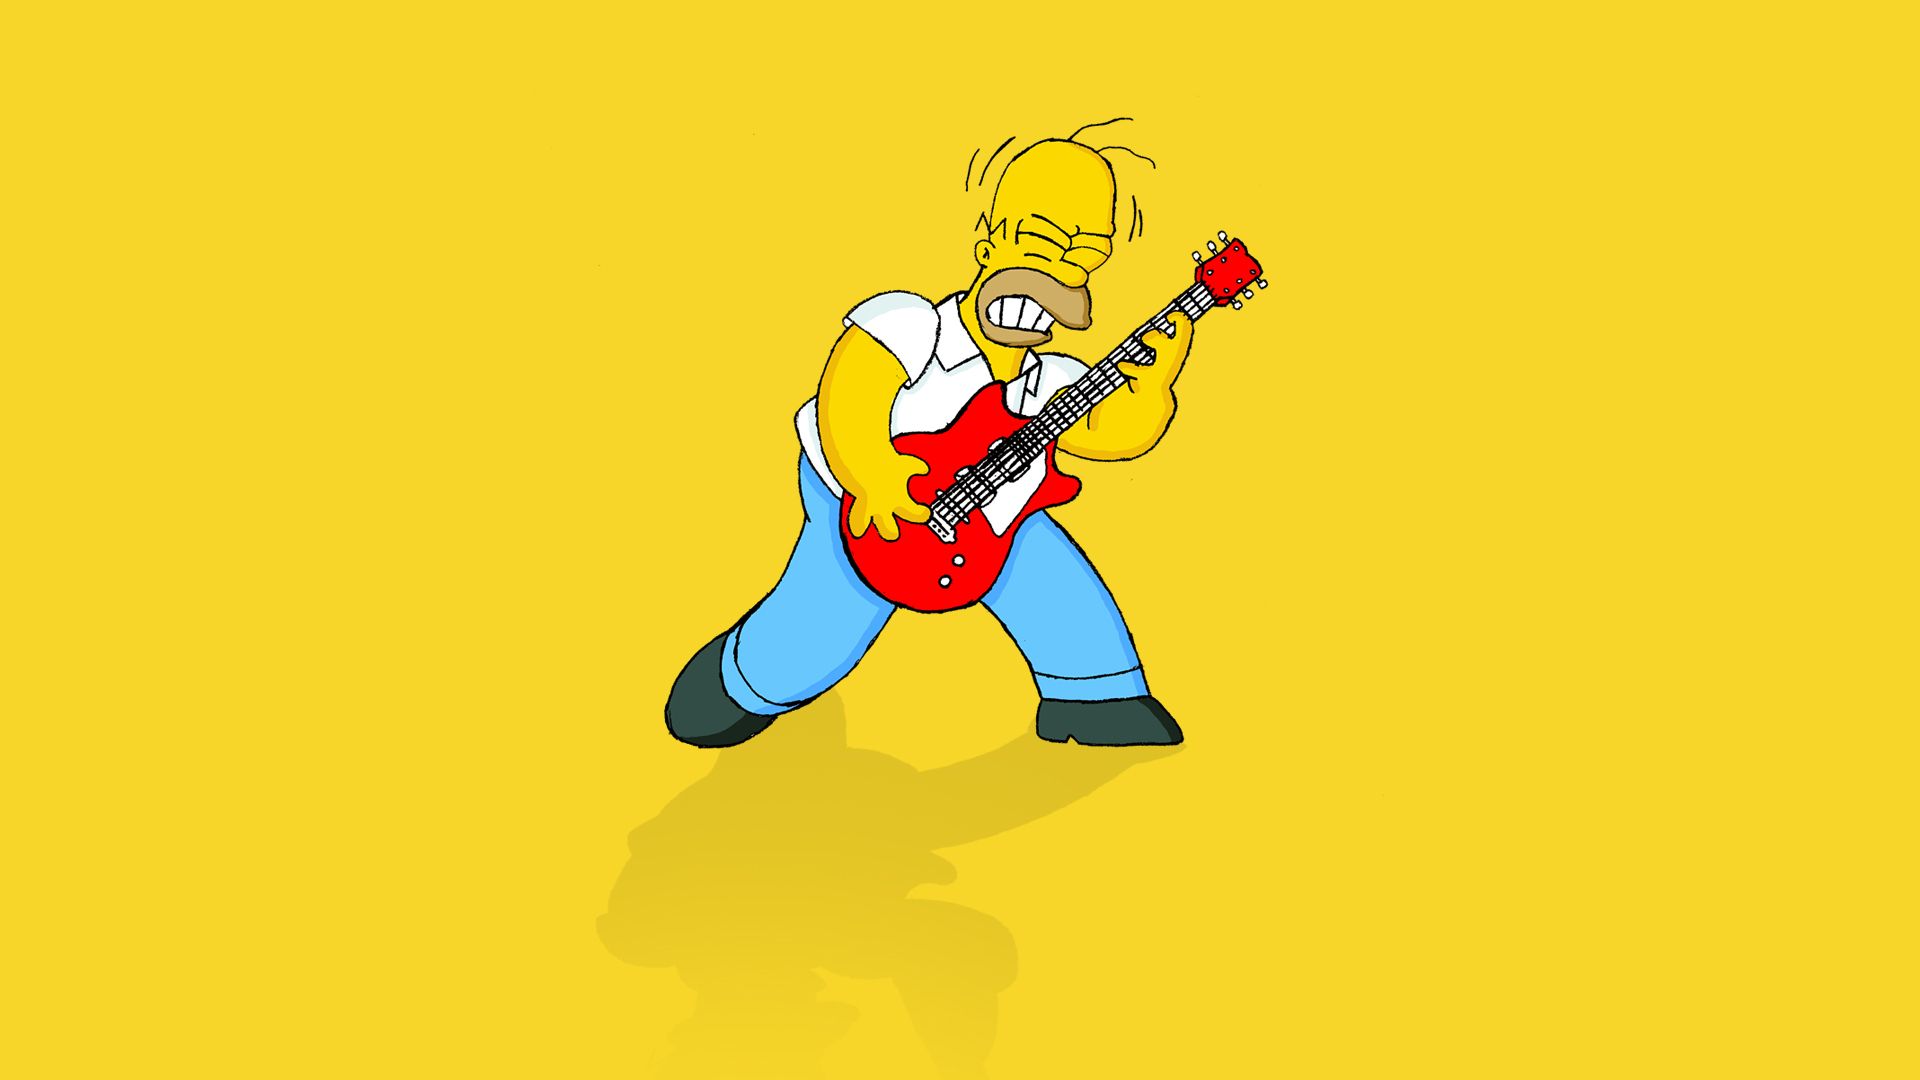 Homer Simpson Wallpaper   Wallpaper High Definition High Quality 1920x1080